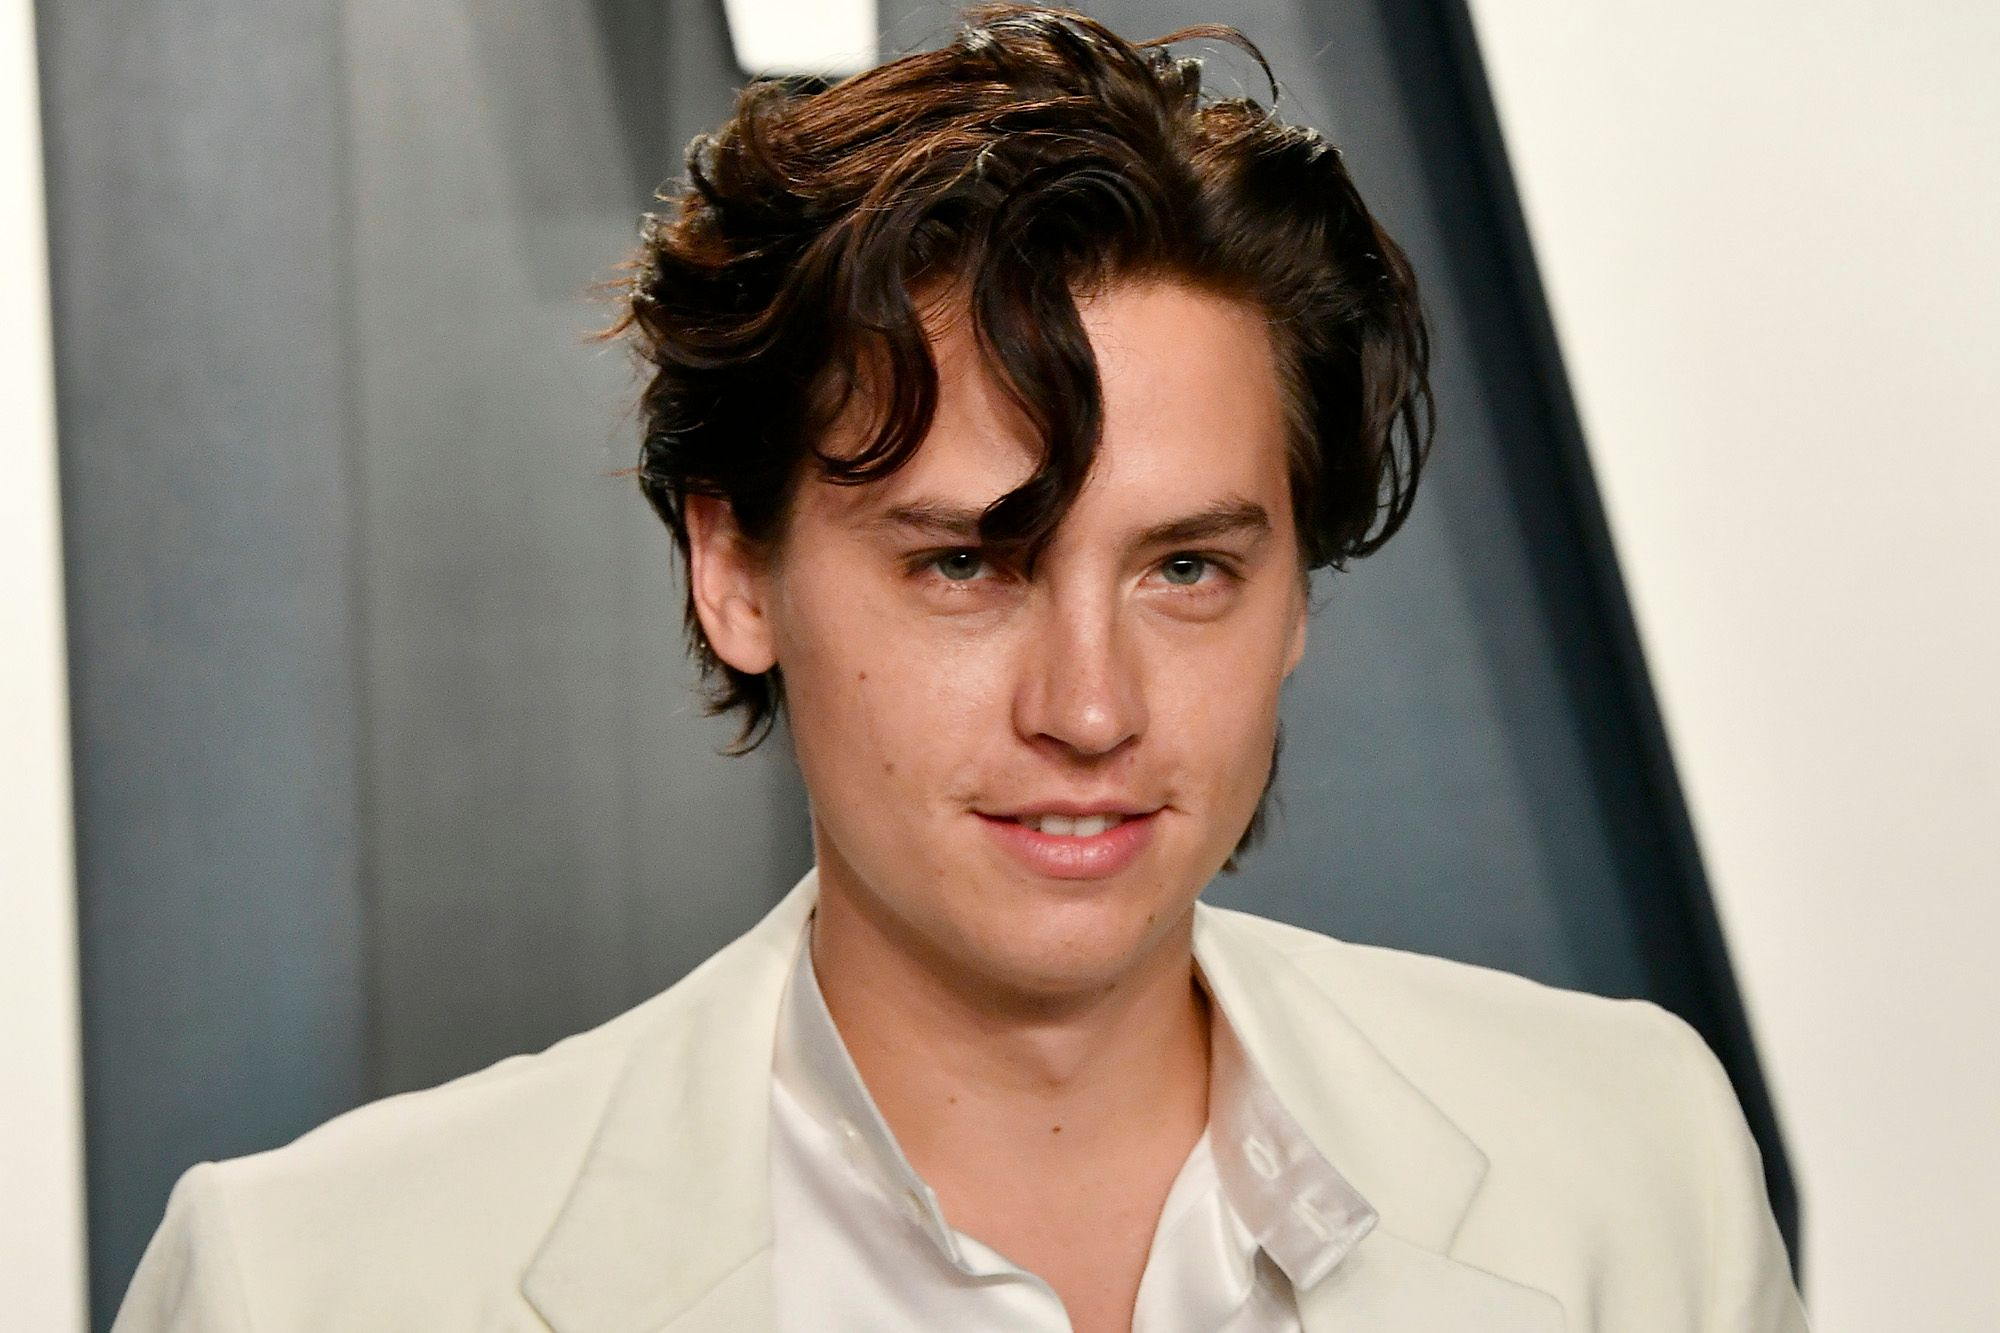 Cole Sprouse Reveals If He'd Consider Reprising His Role In A Potential 'Suite Life Of Zack And Cody' Reboot